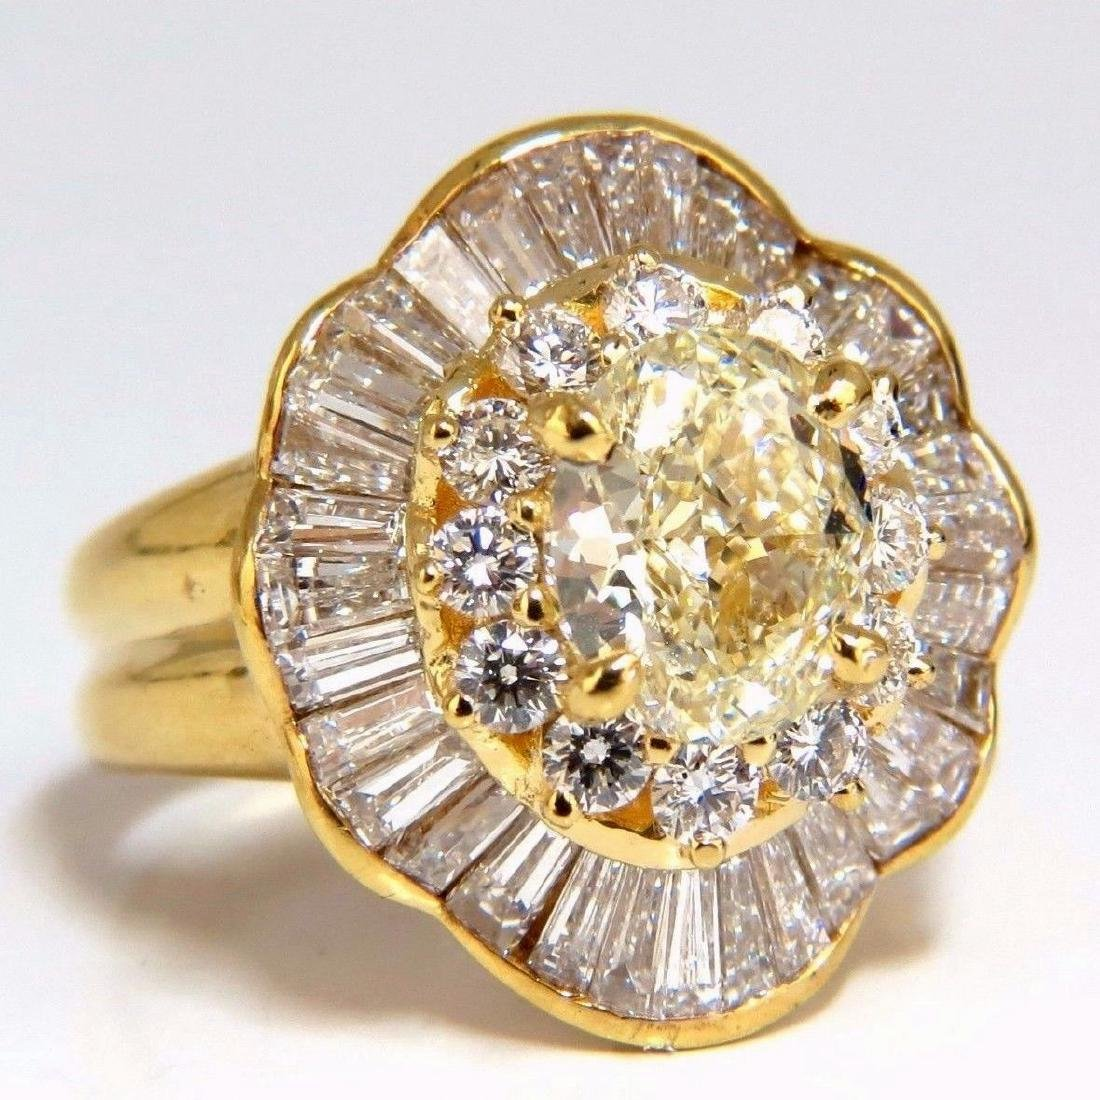 GIA Certified 4.51ct Natural Yellow Diamond Ring 18Kt